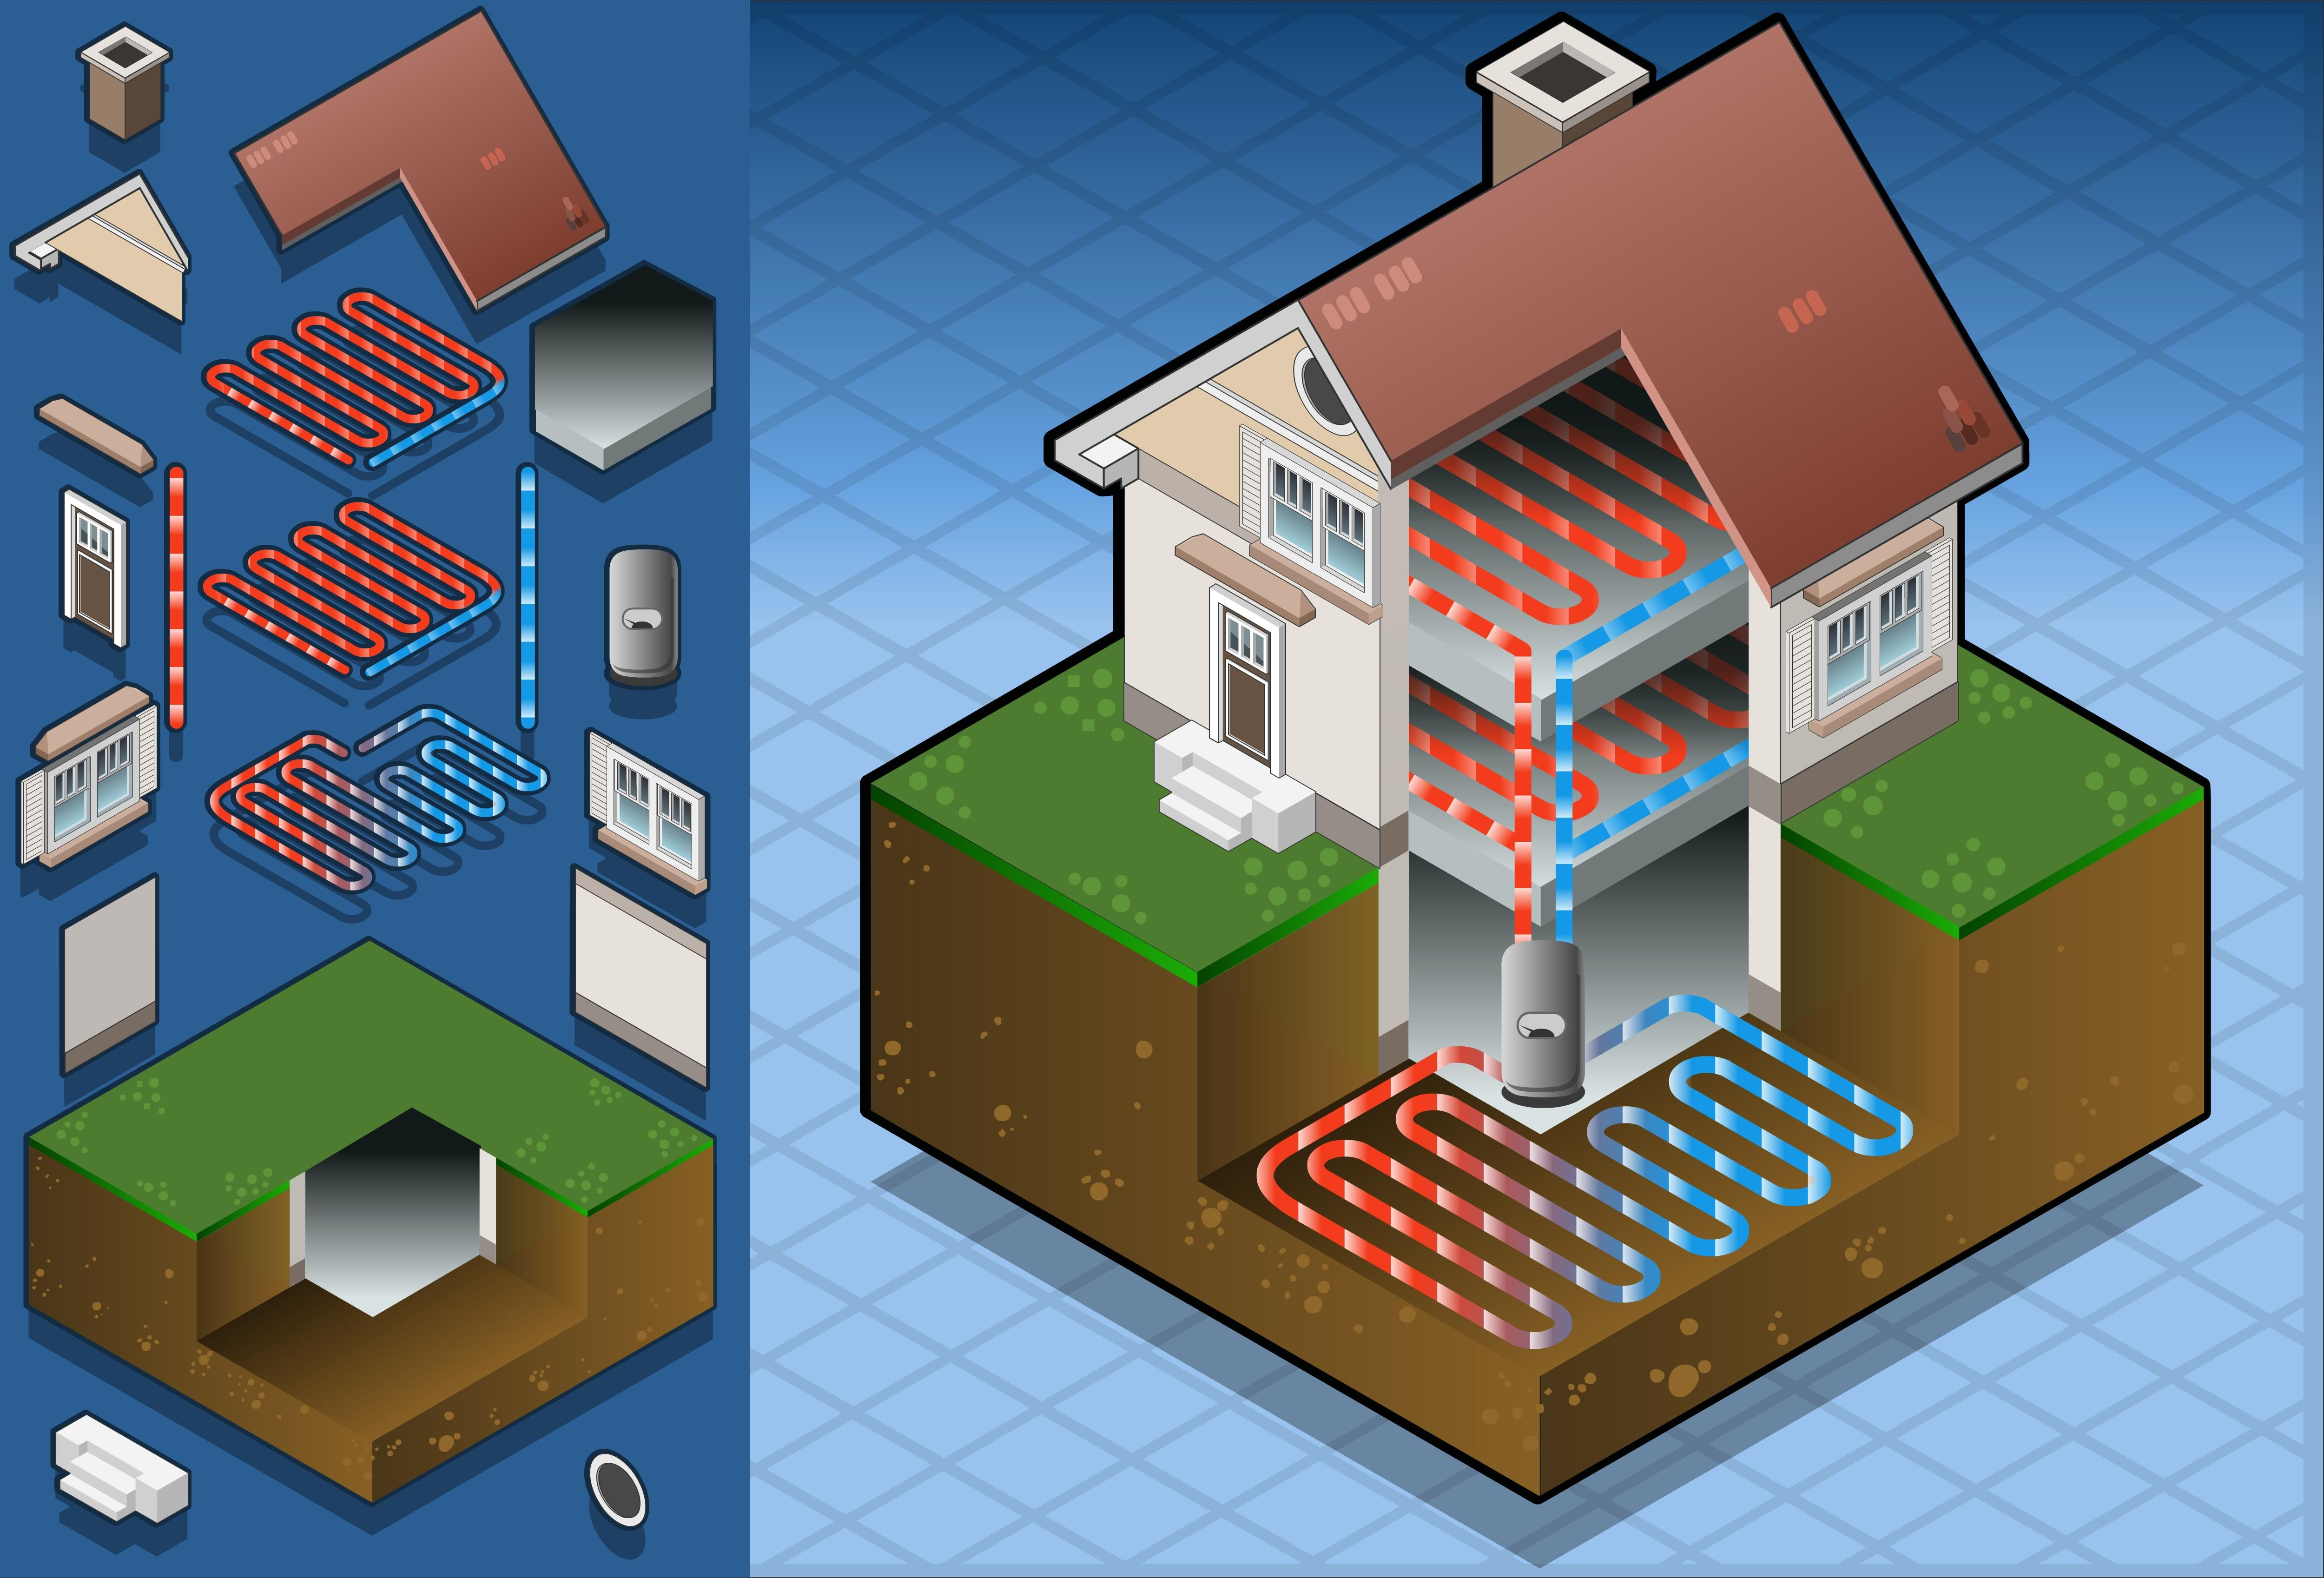 GEOTHERMAL HEAT PUMPS  A geothermal heat pump is a central heating and/or cooling system that transfers heat to and from the ground, boosting efficient and reducing the operation costs of heating and